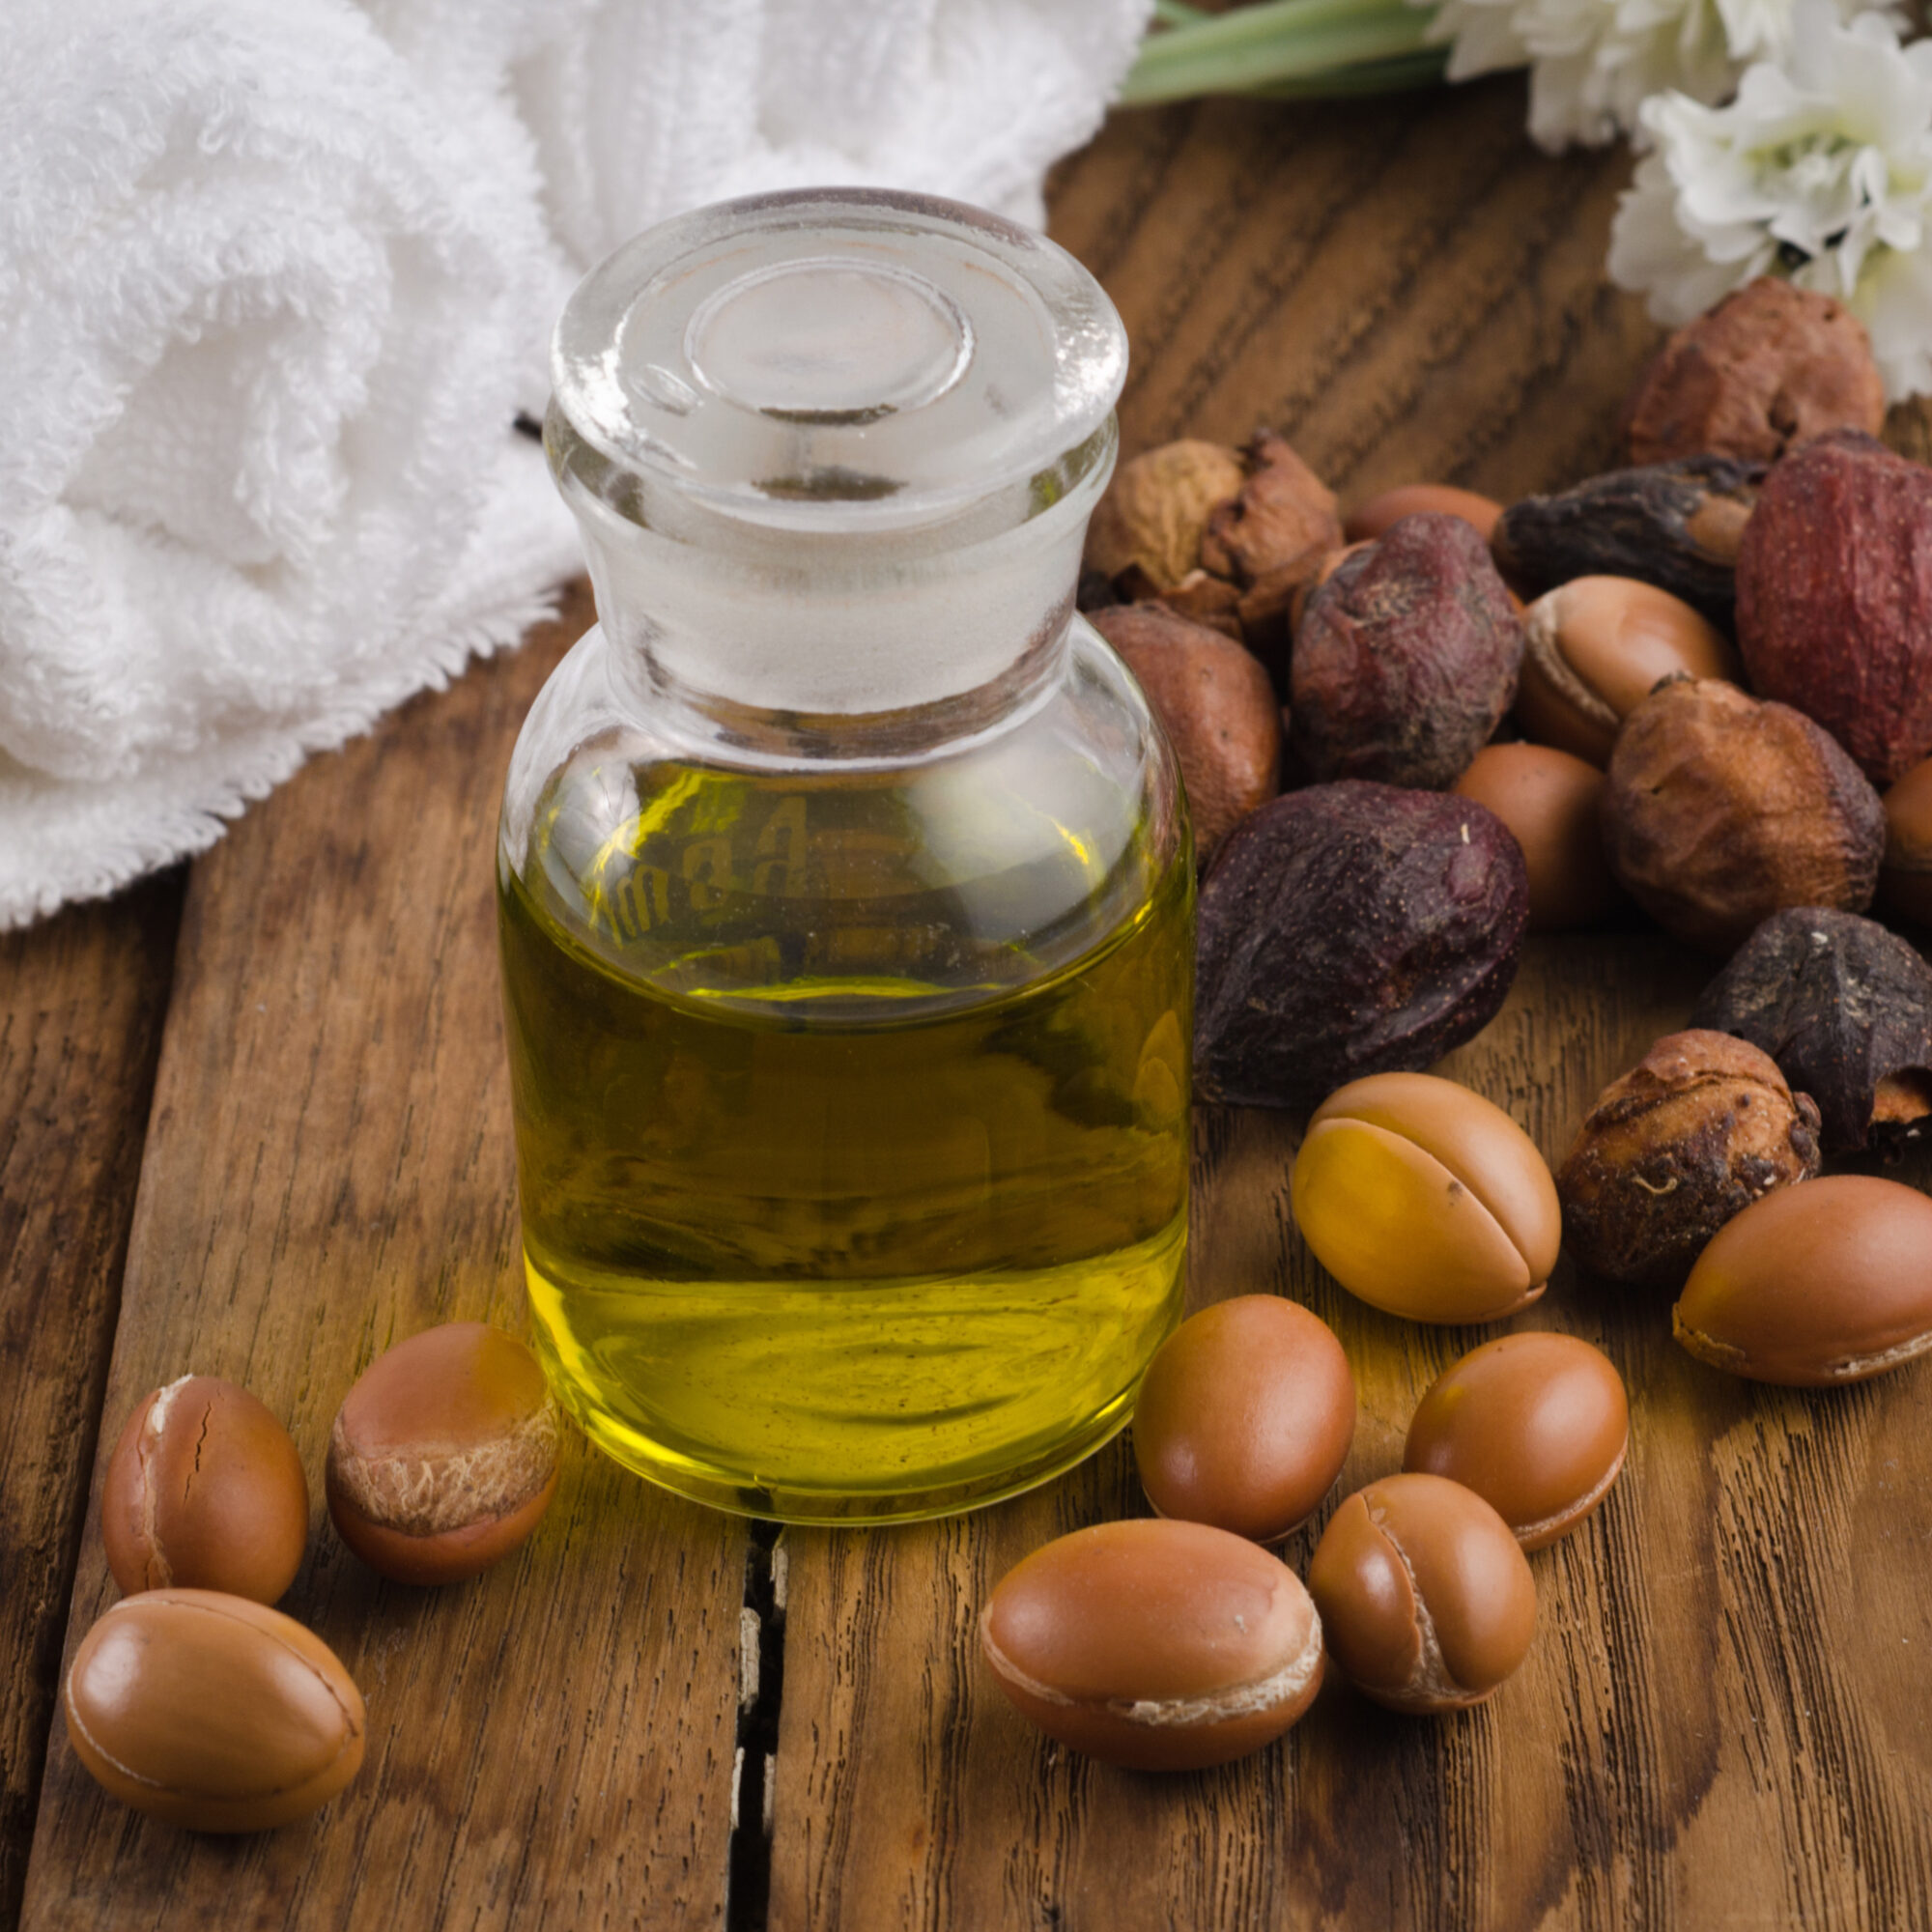 A bottle of argan oil from Morocco.